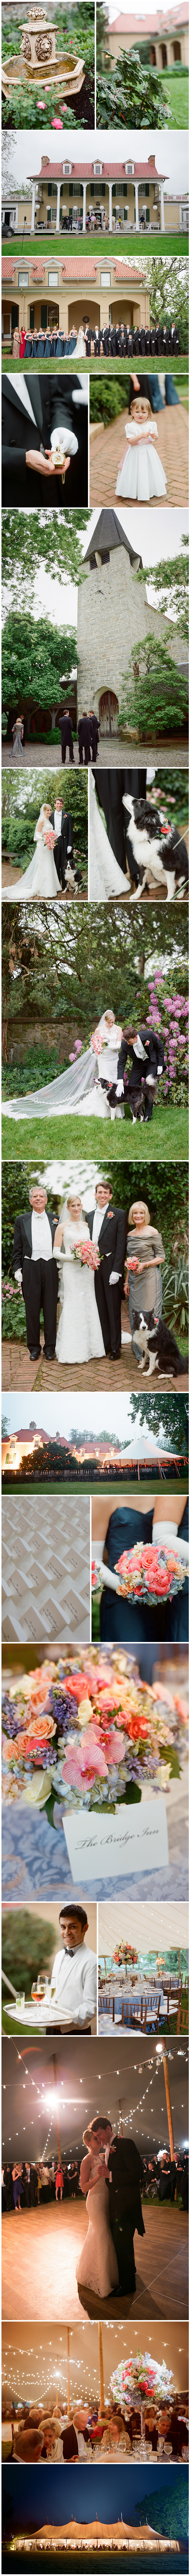 Marked by formal elegance,  this beautifully bespoke wedding was the picture of perfection from long-tailed tuxes to polished, gloved attendants.  Floral accents added a colorful edge to the pristine event, with corals, pinks, peaches, creams and blues gracing the tabletops and adding opulent detailing to the ladies' gowns.  Even the couple's pup wore a splash of pink florals on her collar.  As the enchanted afternoon faded into evening, the exquisitely tented lawn made for a sumptuous scene with guests dancing far into the night. Images by Kate Headley.